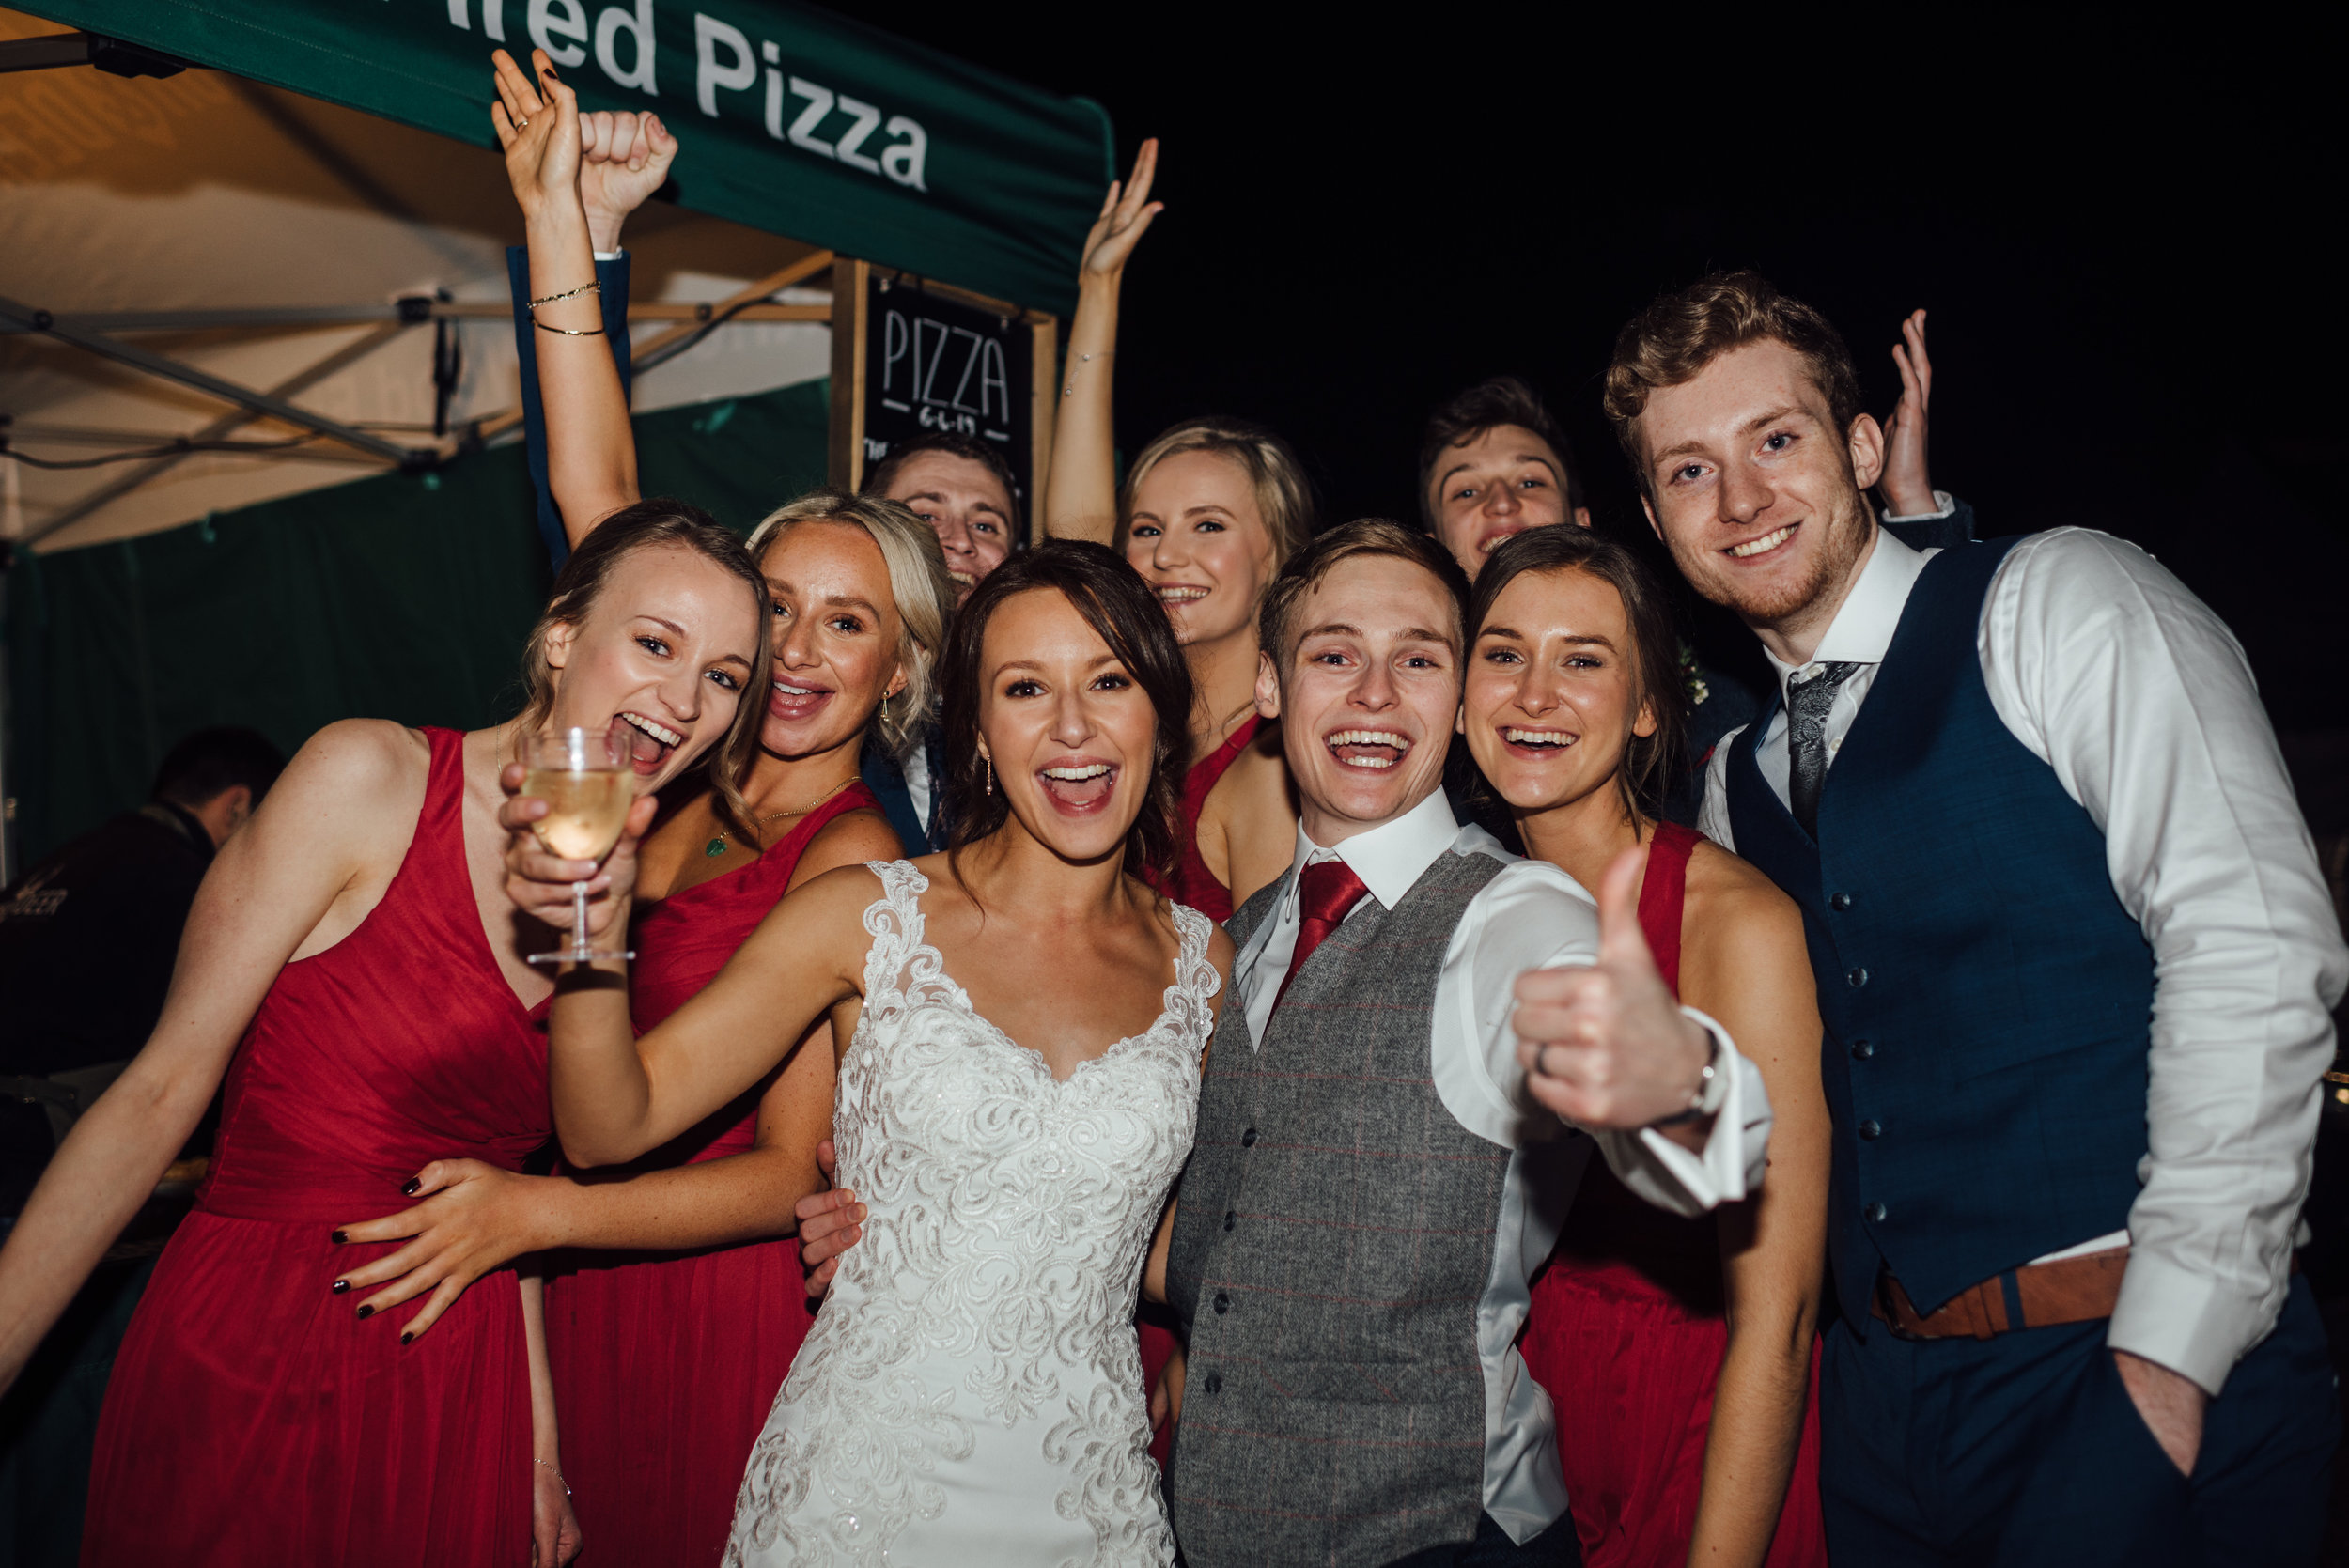 Wedding Pizza - a must!